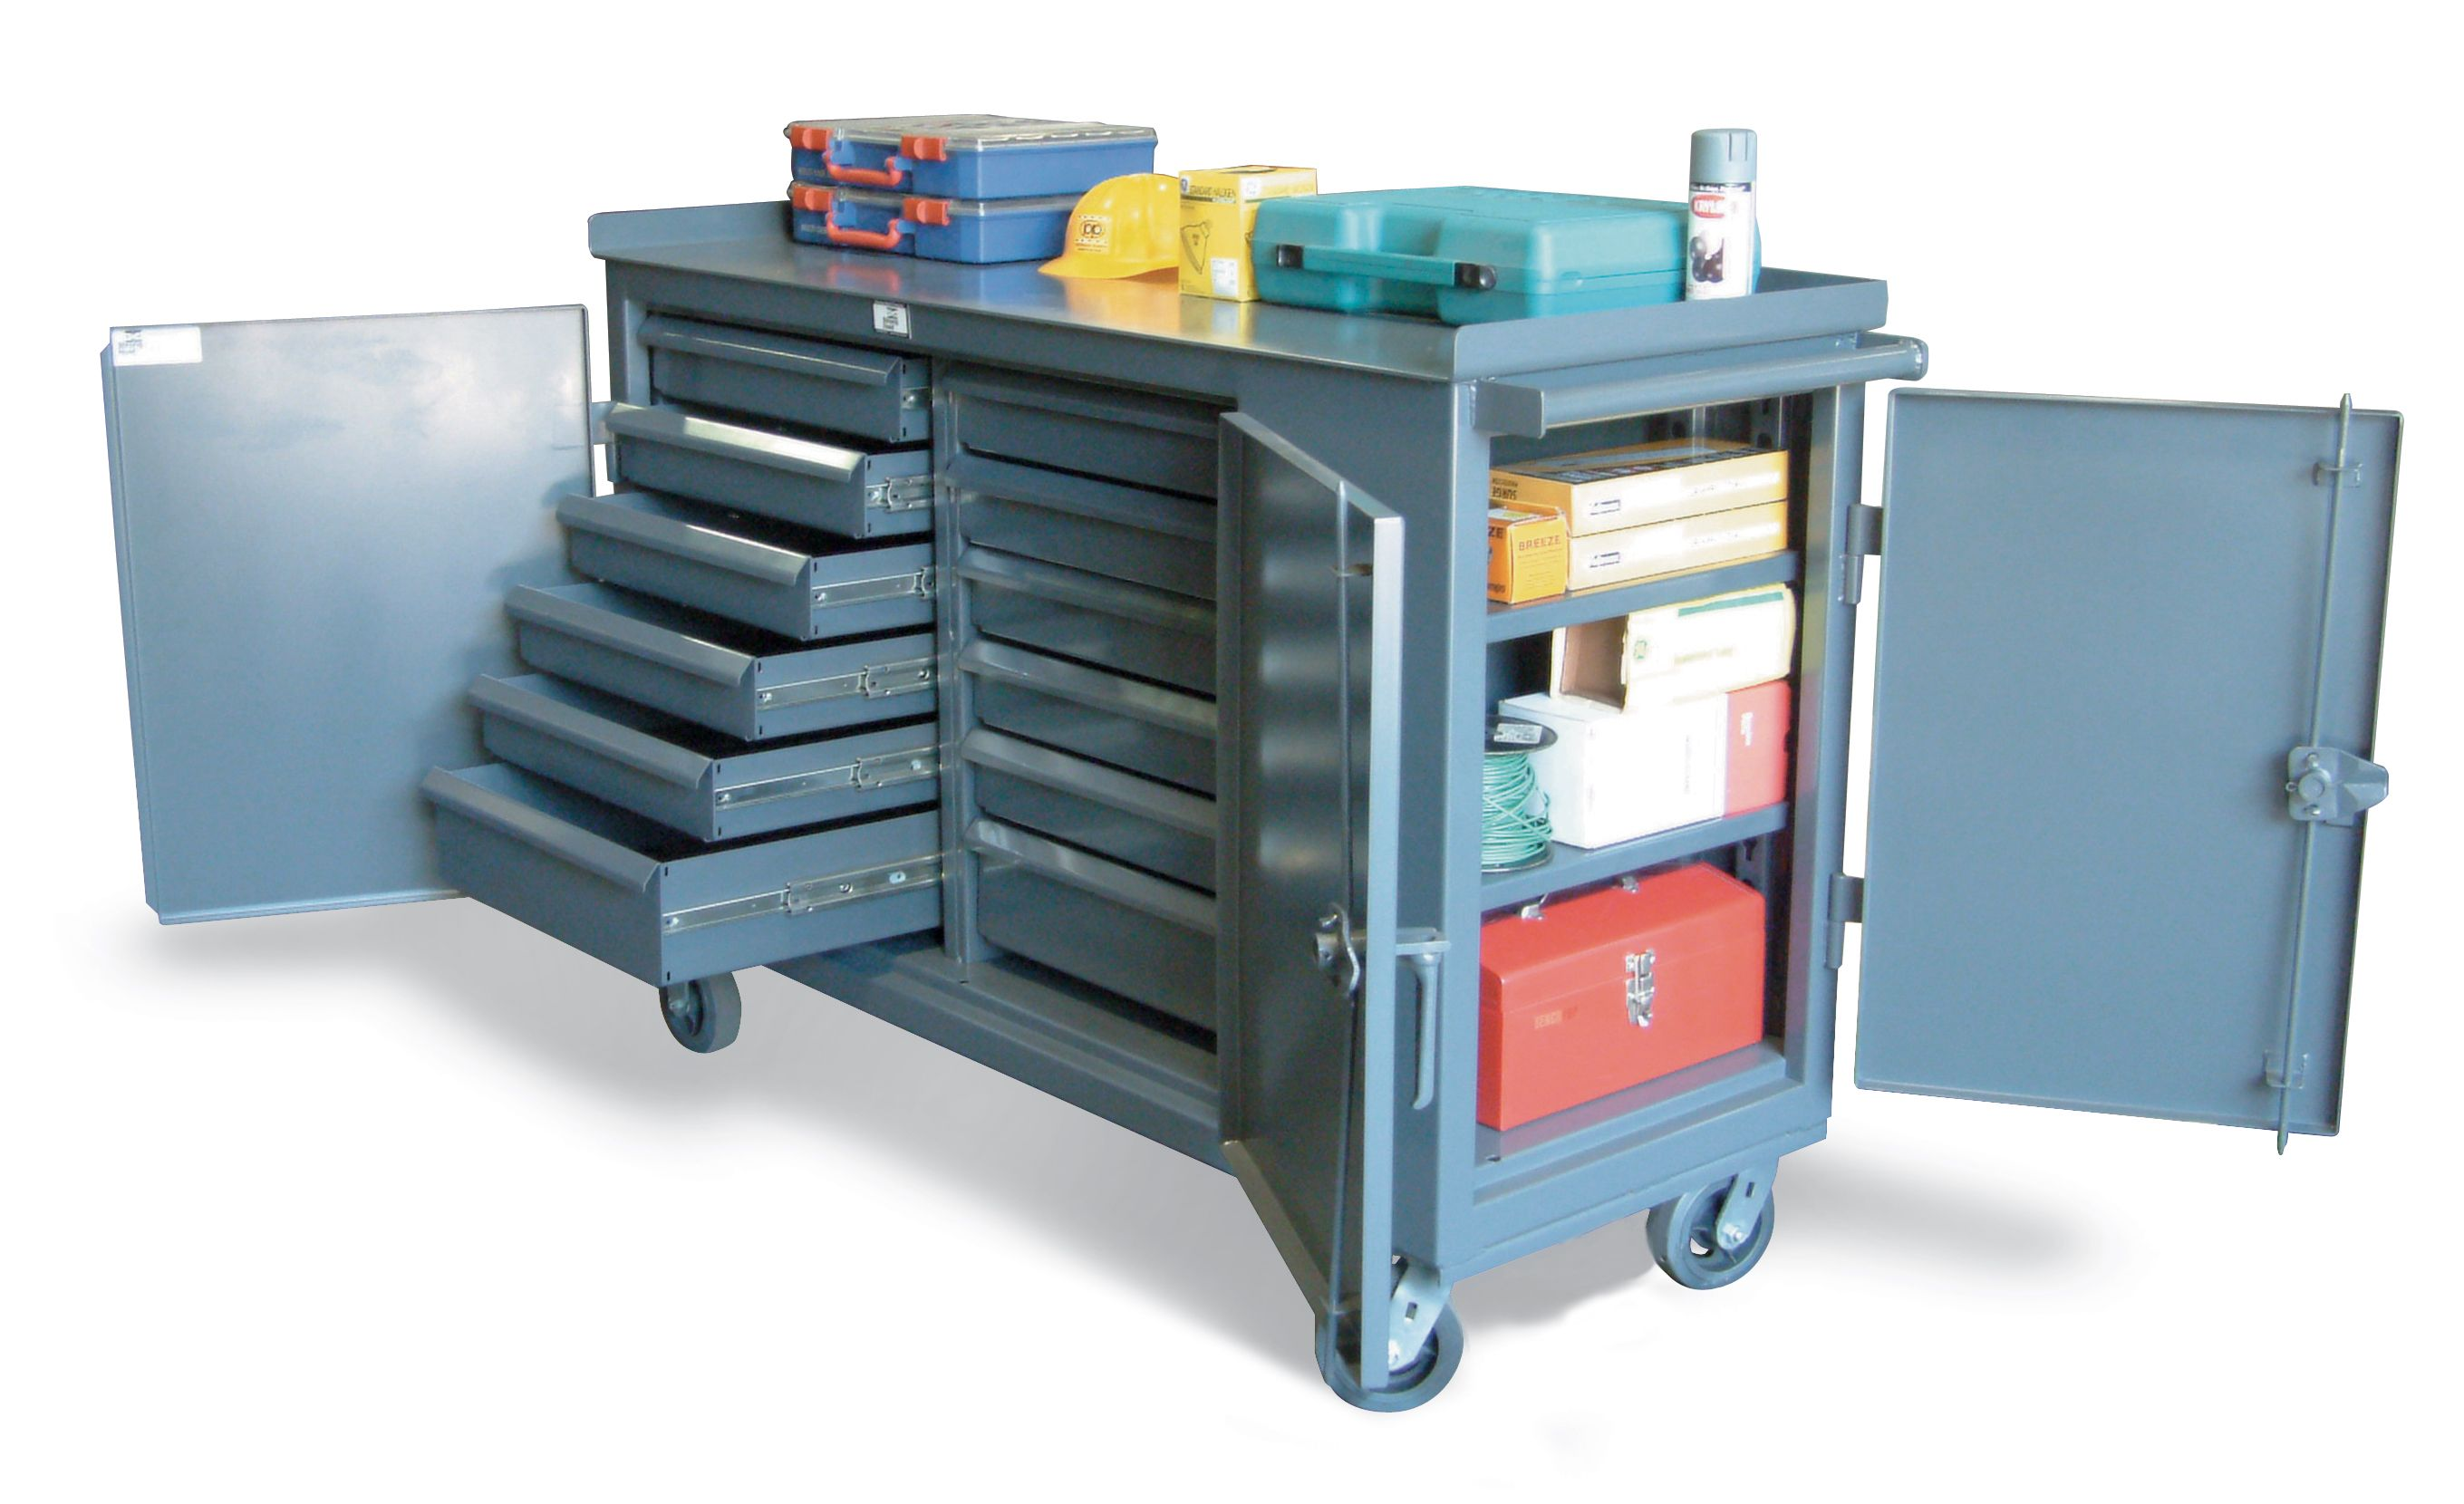 2pc Mini Tool Chest Cabinet Storage Box Rolling Garage Toolbox Organizer New In Home Garden Tools Too Kayak Storage Rack Tool Chest Tool Box Organization